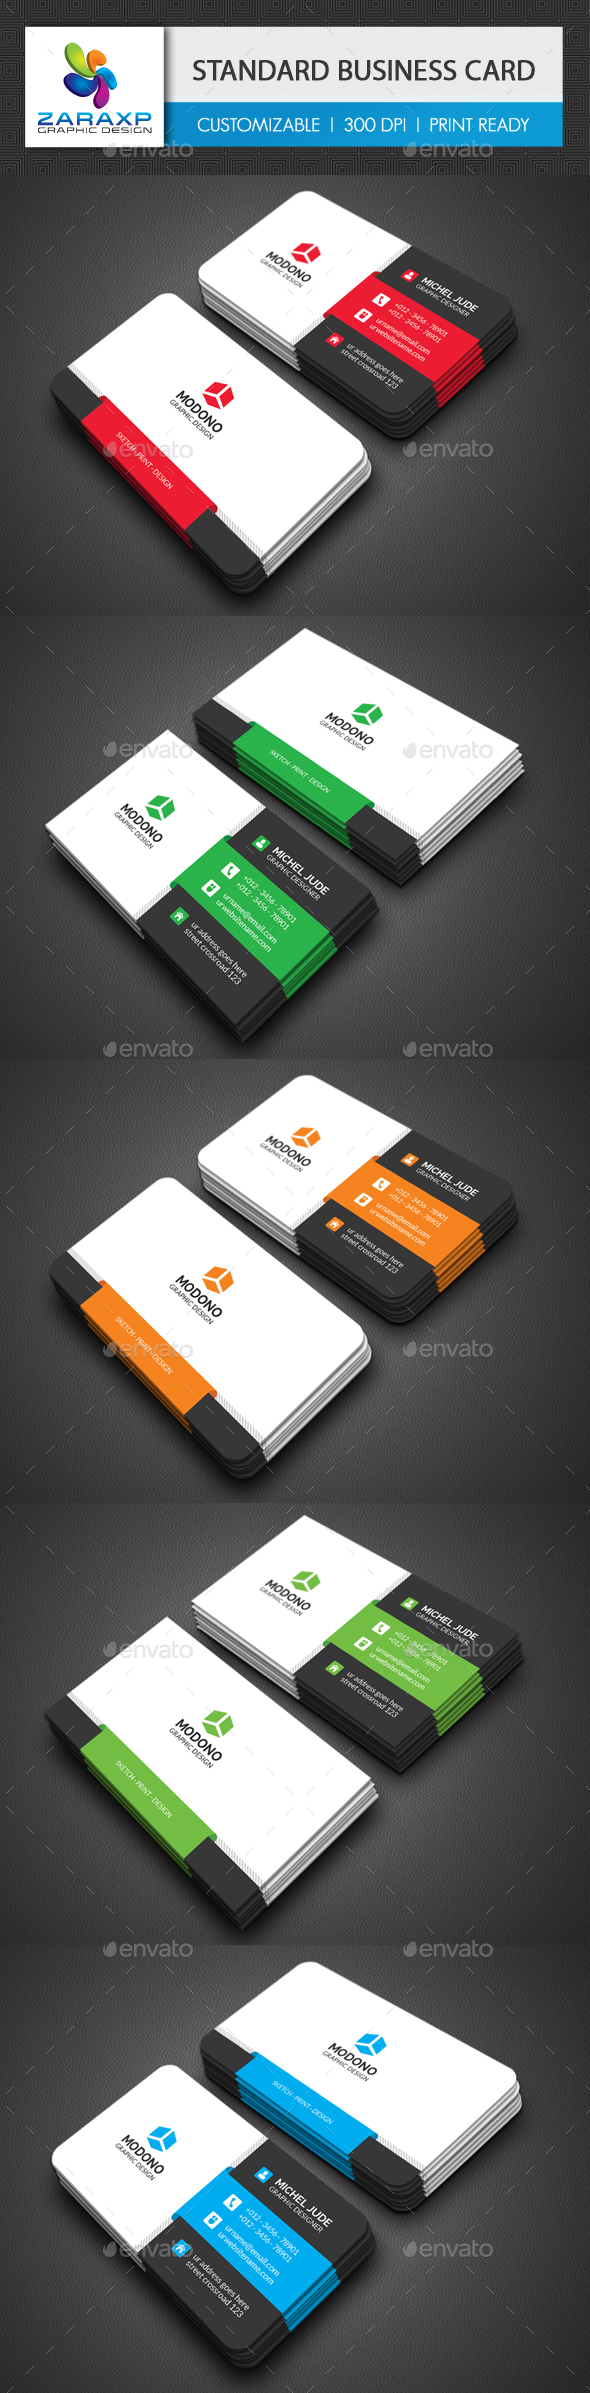 Standard business card template psd download here http standard business card template psd download here httpgraphicriver reheart Choice Image